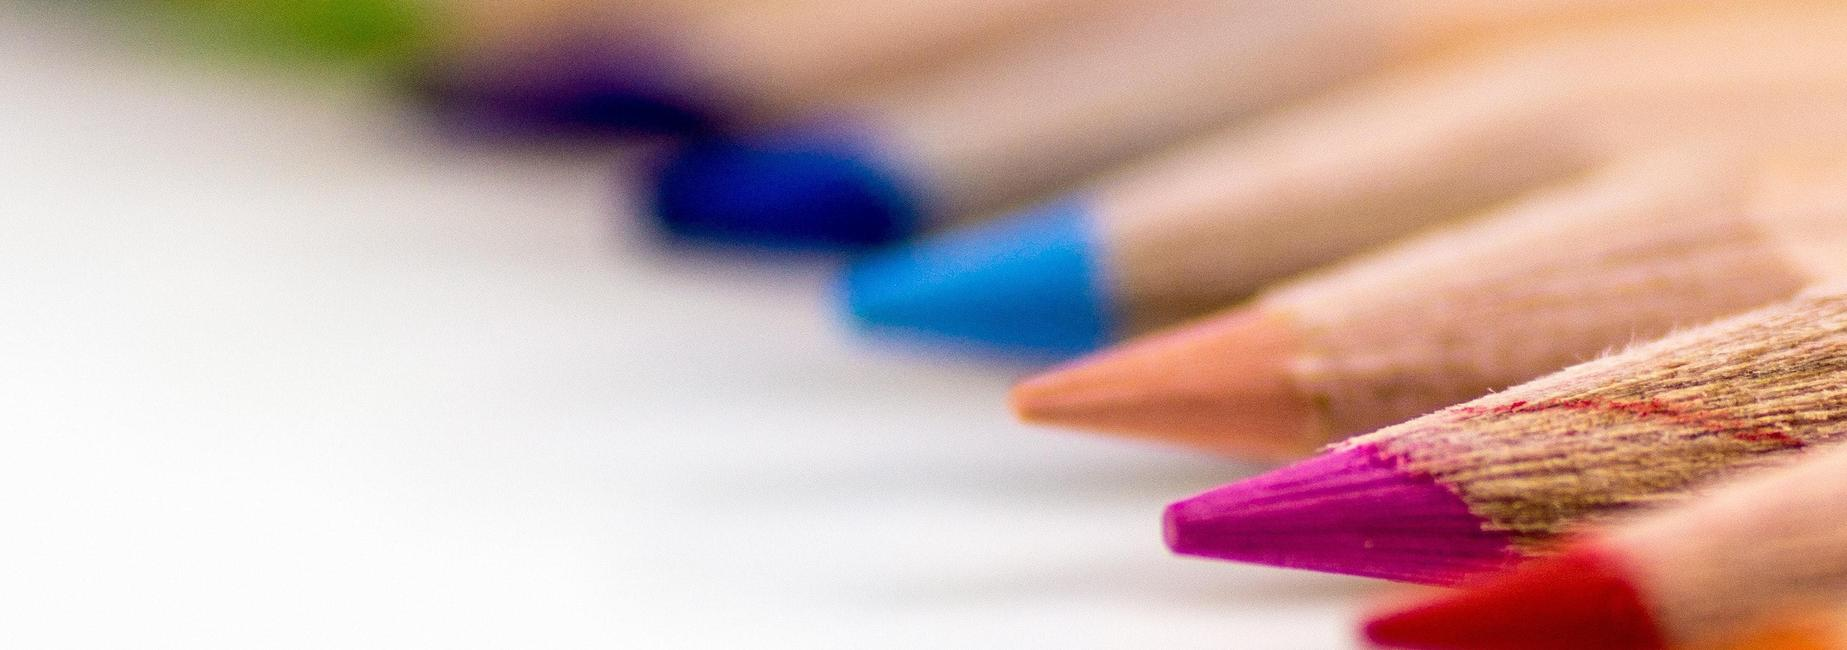 sharpened colored pencils laying down on white surface, caption reads